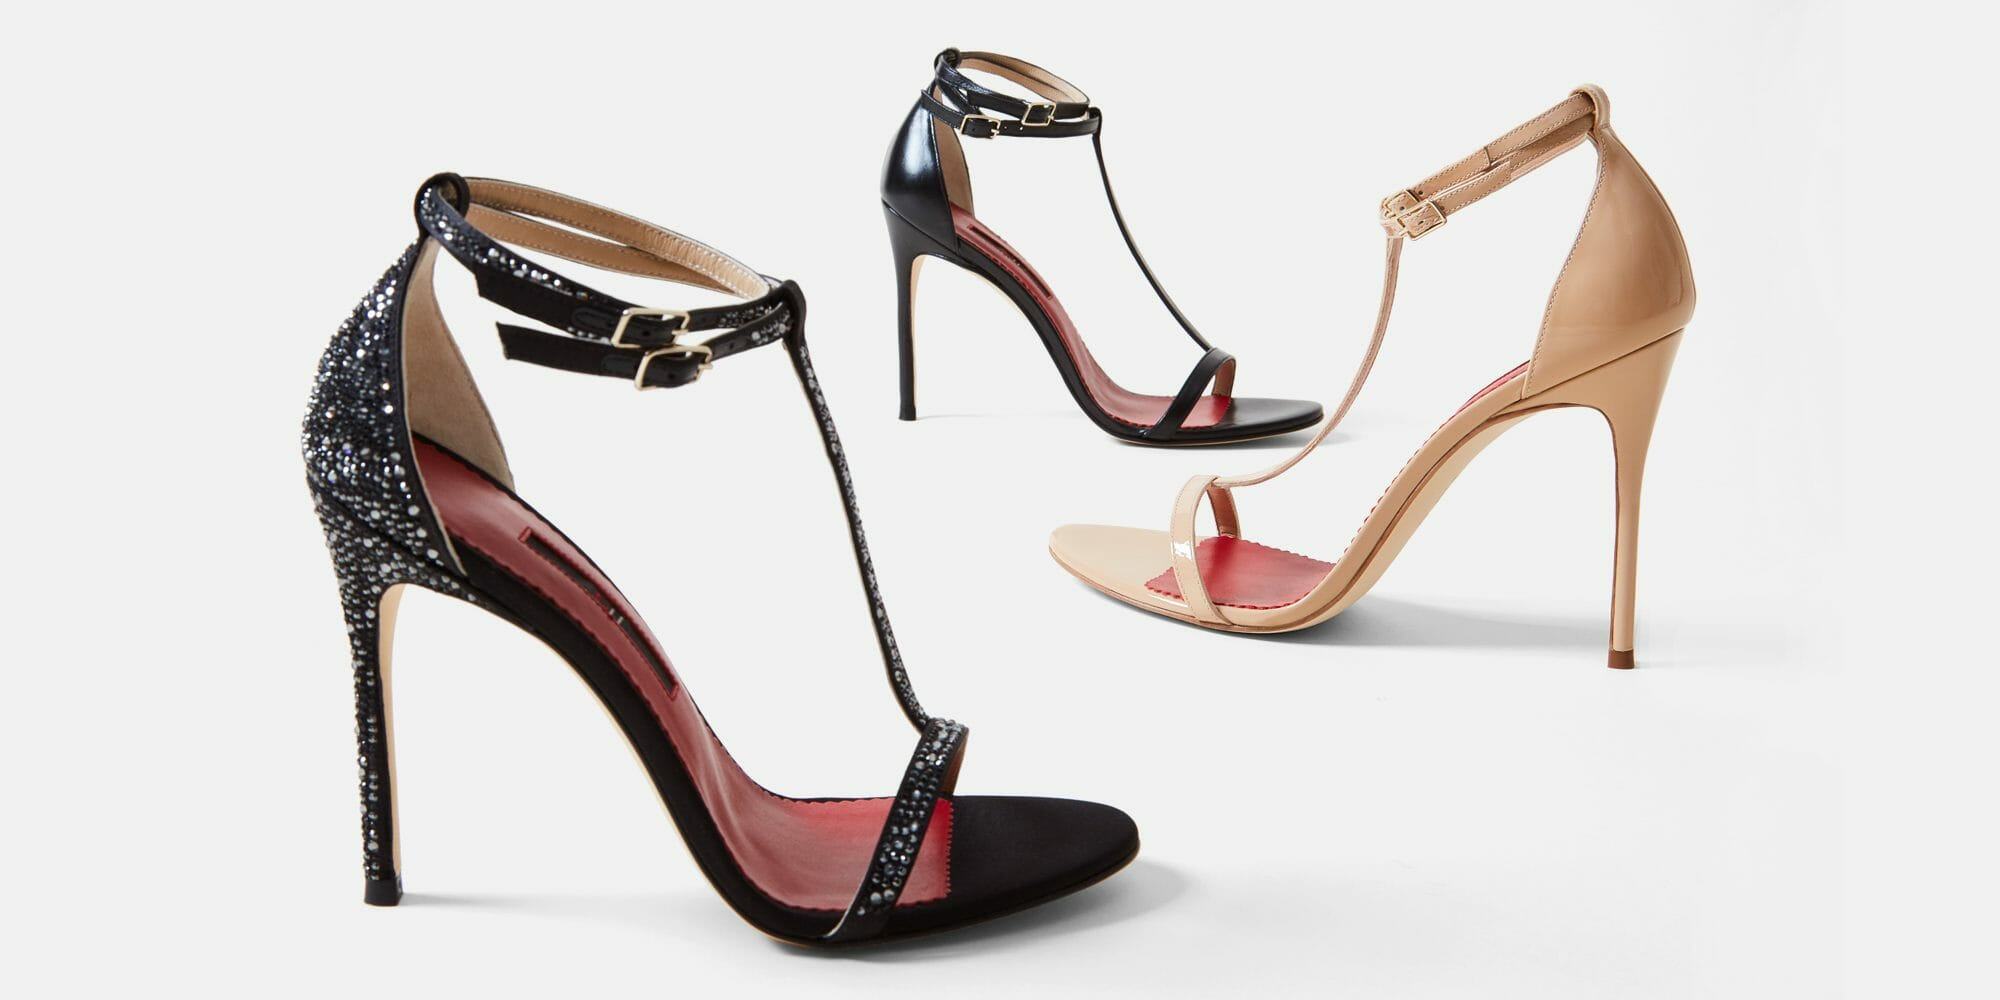 CH-CAROLINA-HERRERA-SHOES